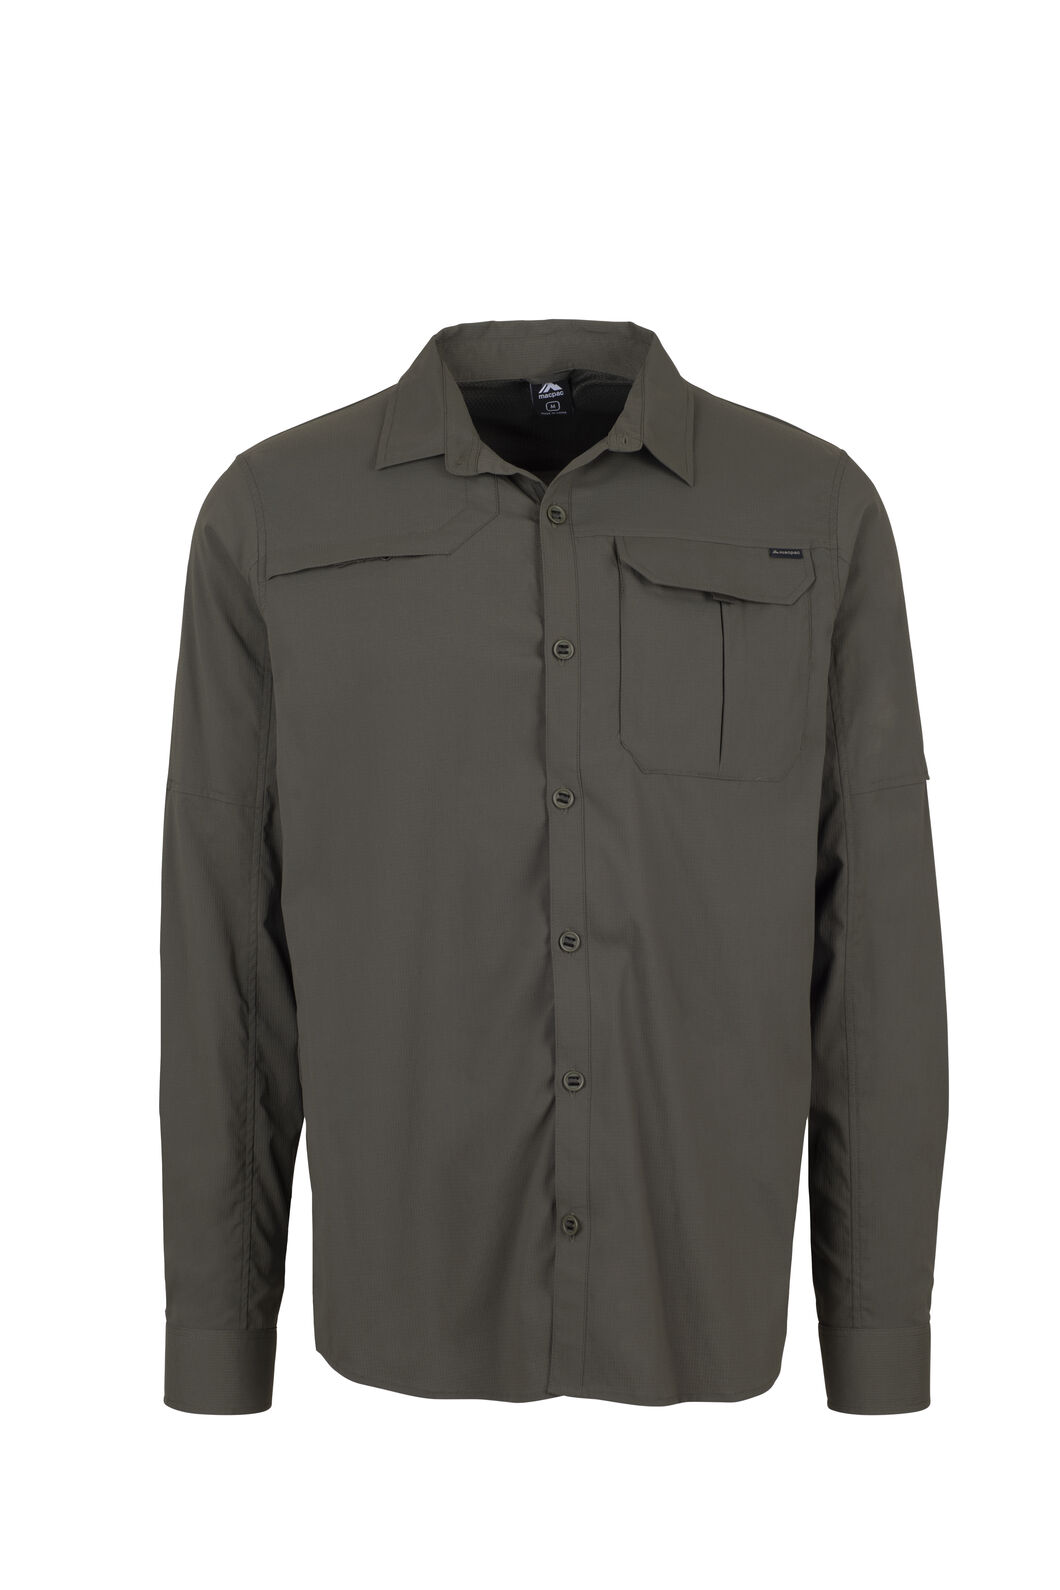 Macpac Ranger Shirt - Men's, Grape Leaf, hi-res